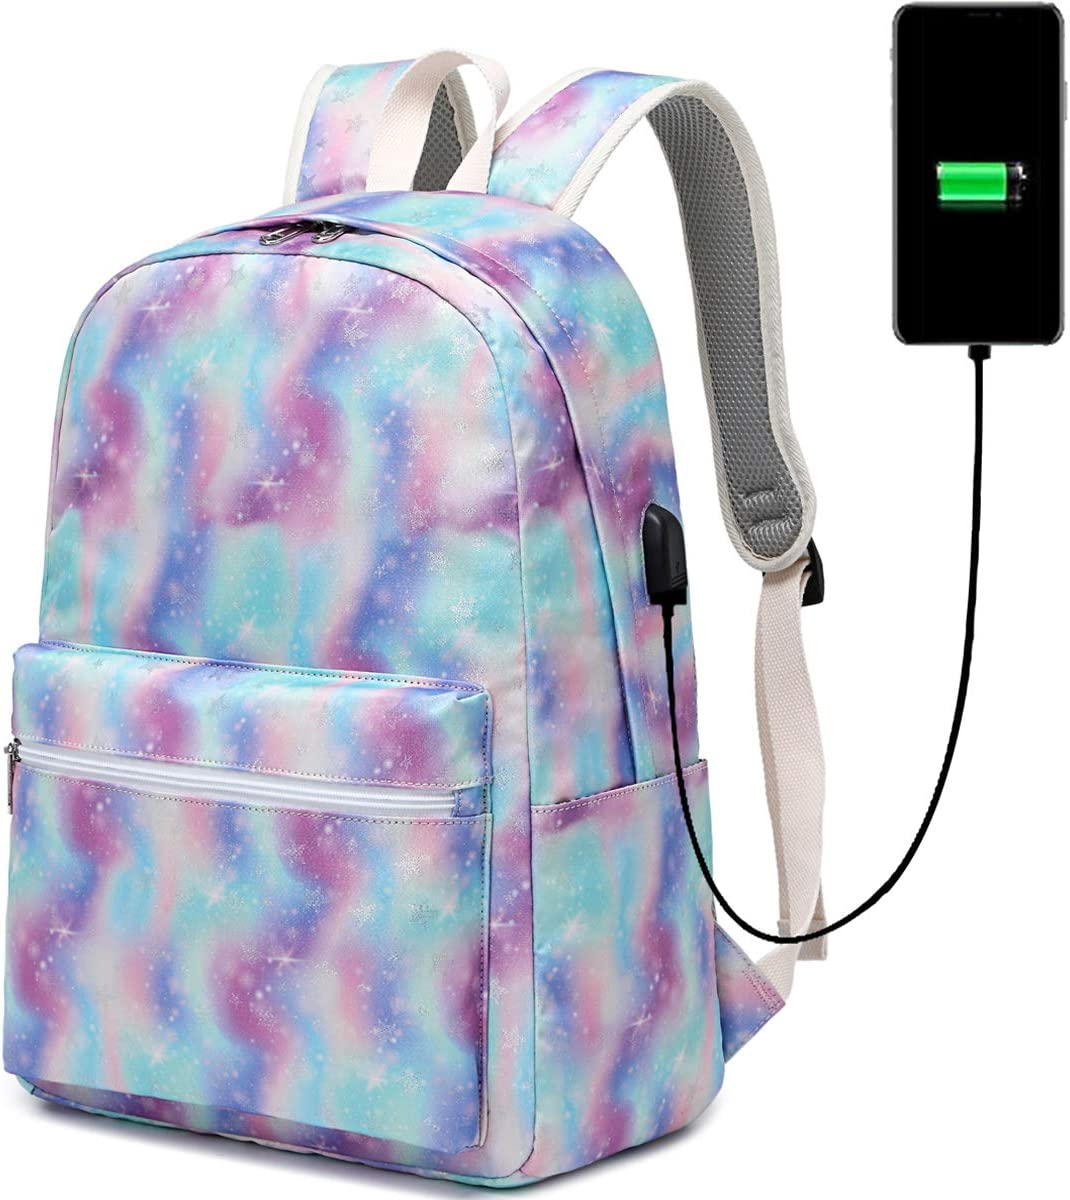 CAMTOP School Laptop Backpack Women Girls Bookbag Flower College Backpack with USB Port Water Resistant (T62-b Star-usb)